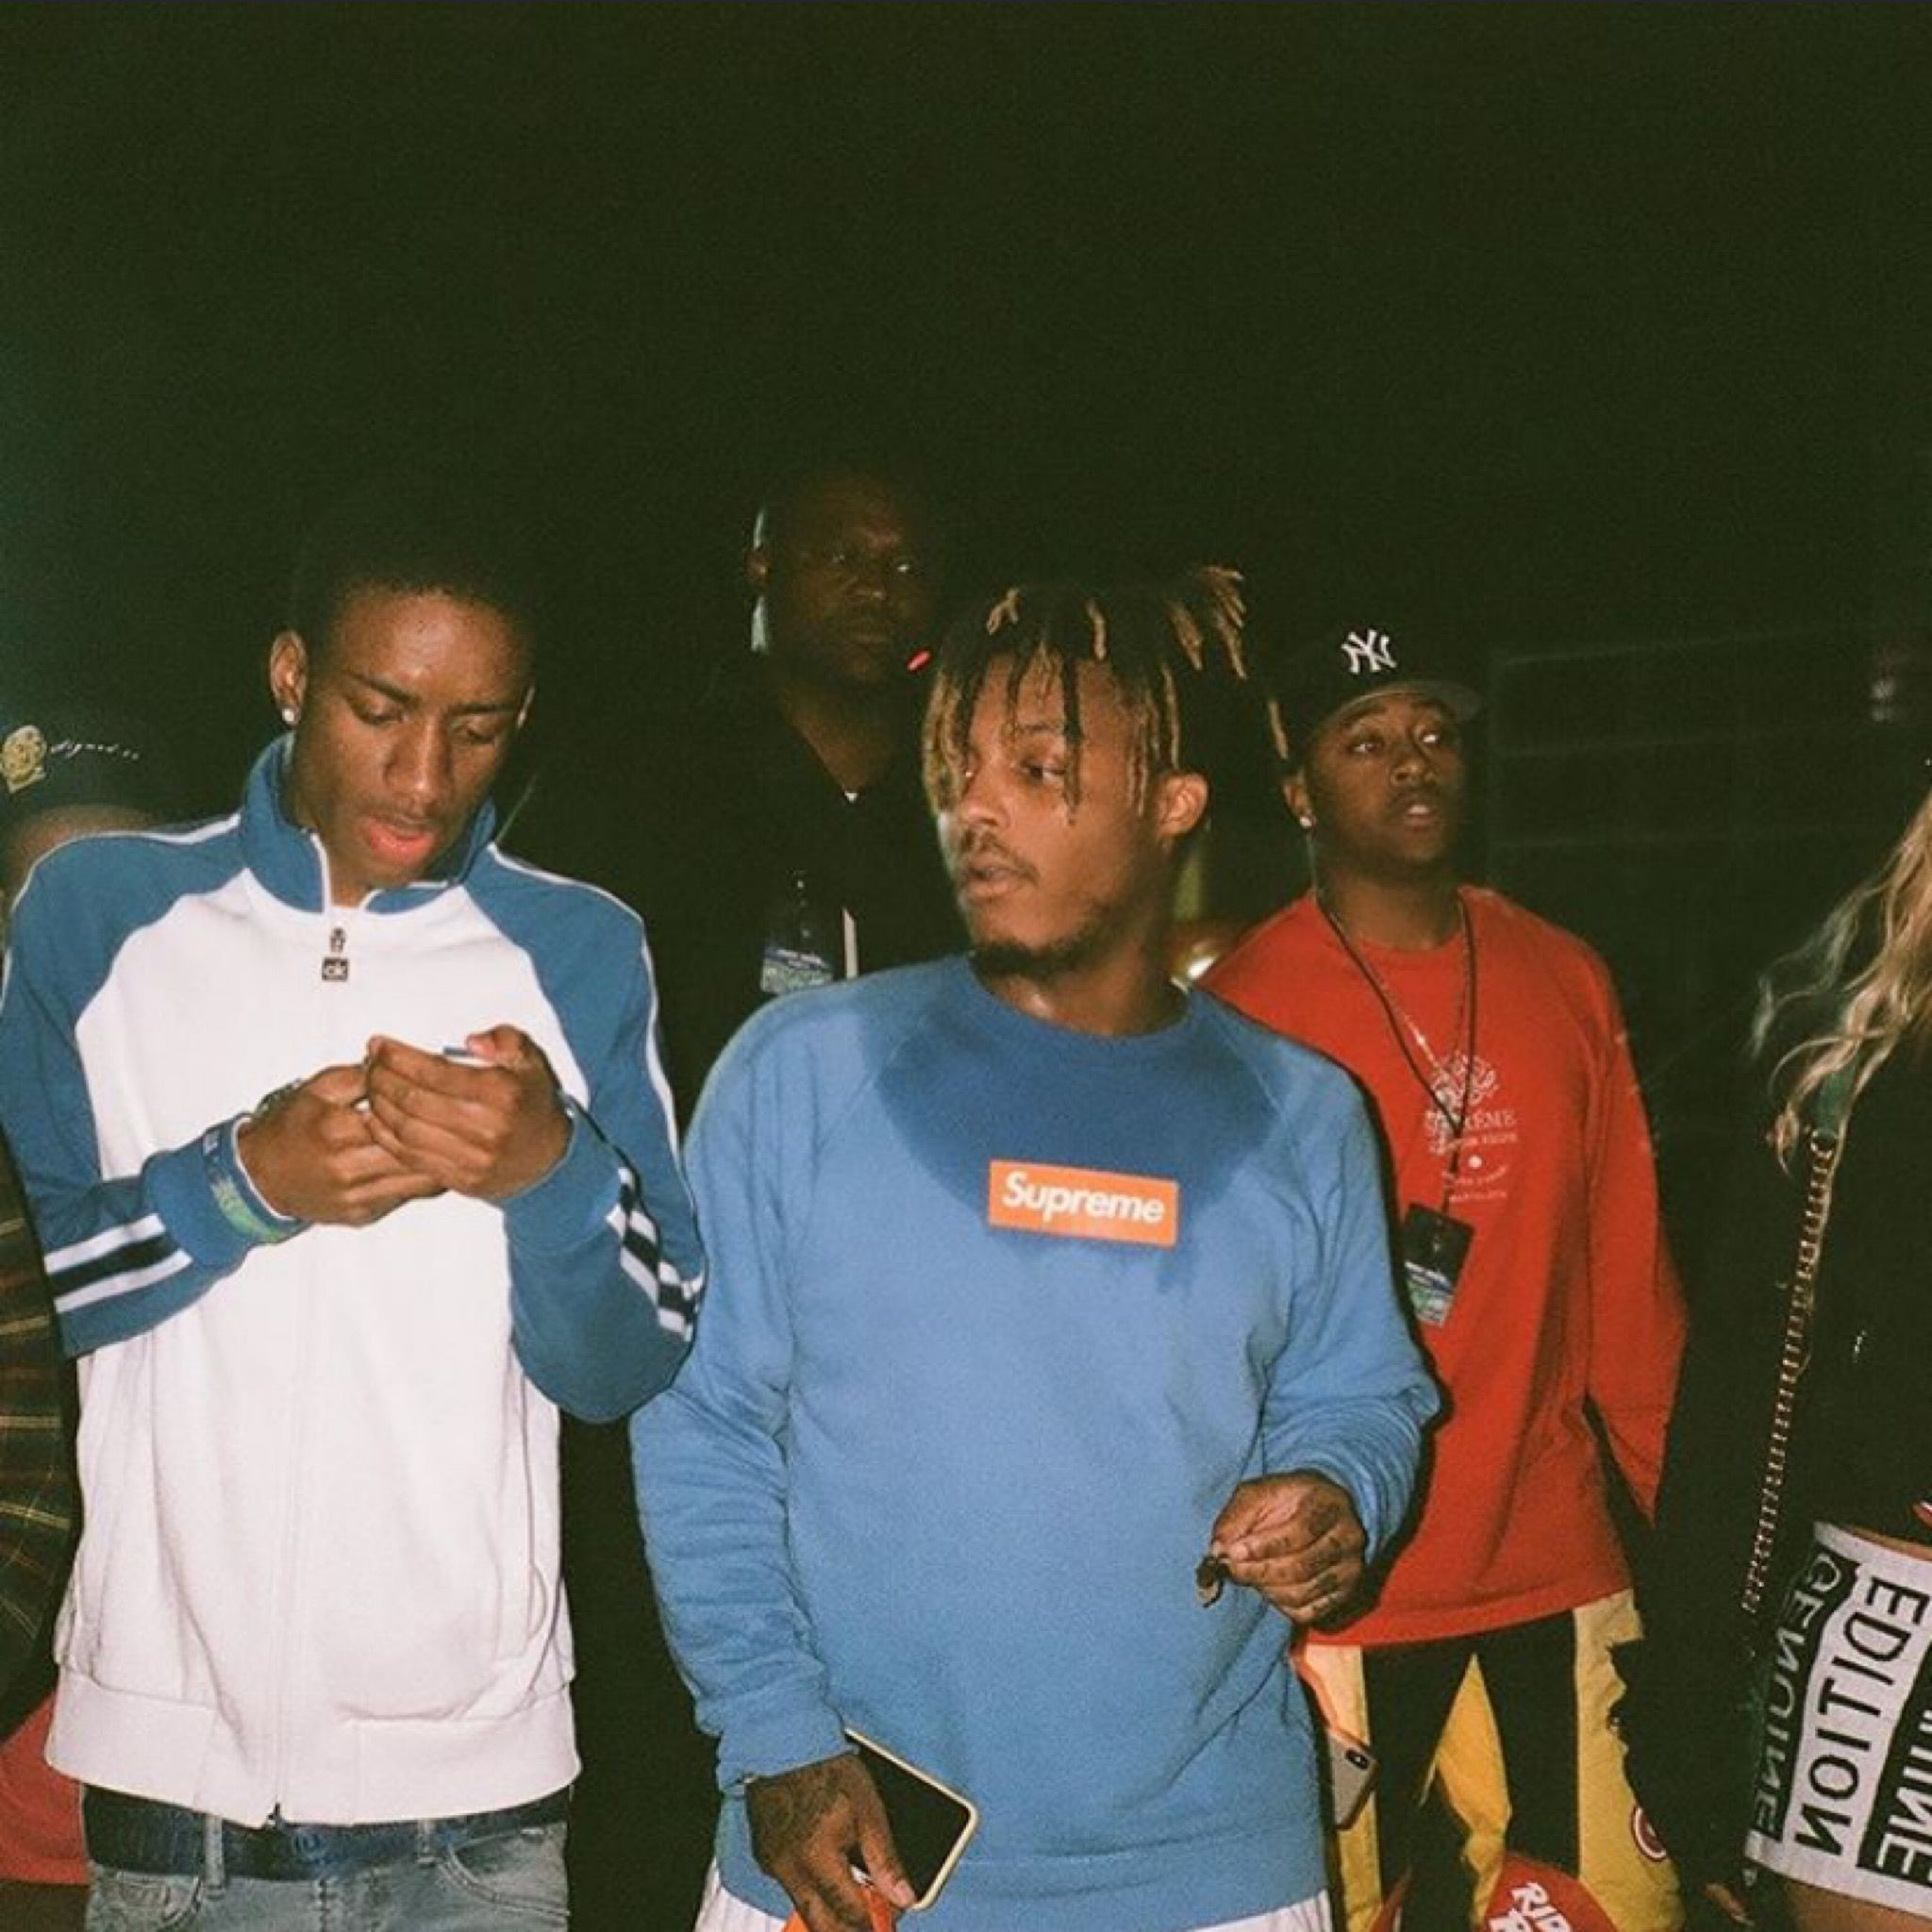 Pin by ℭ𝔞𝔩𝔩𝔲𝔫 on Juice WRLD in 2020 Badass aesthetic